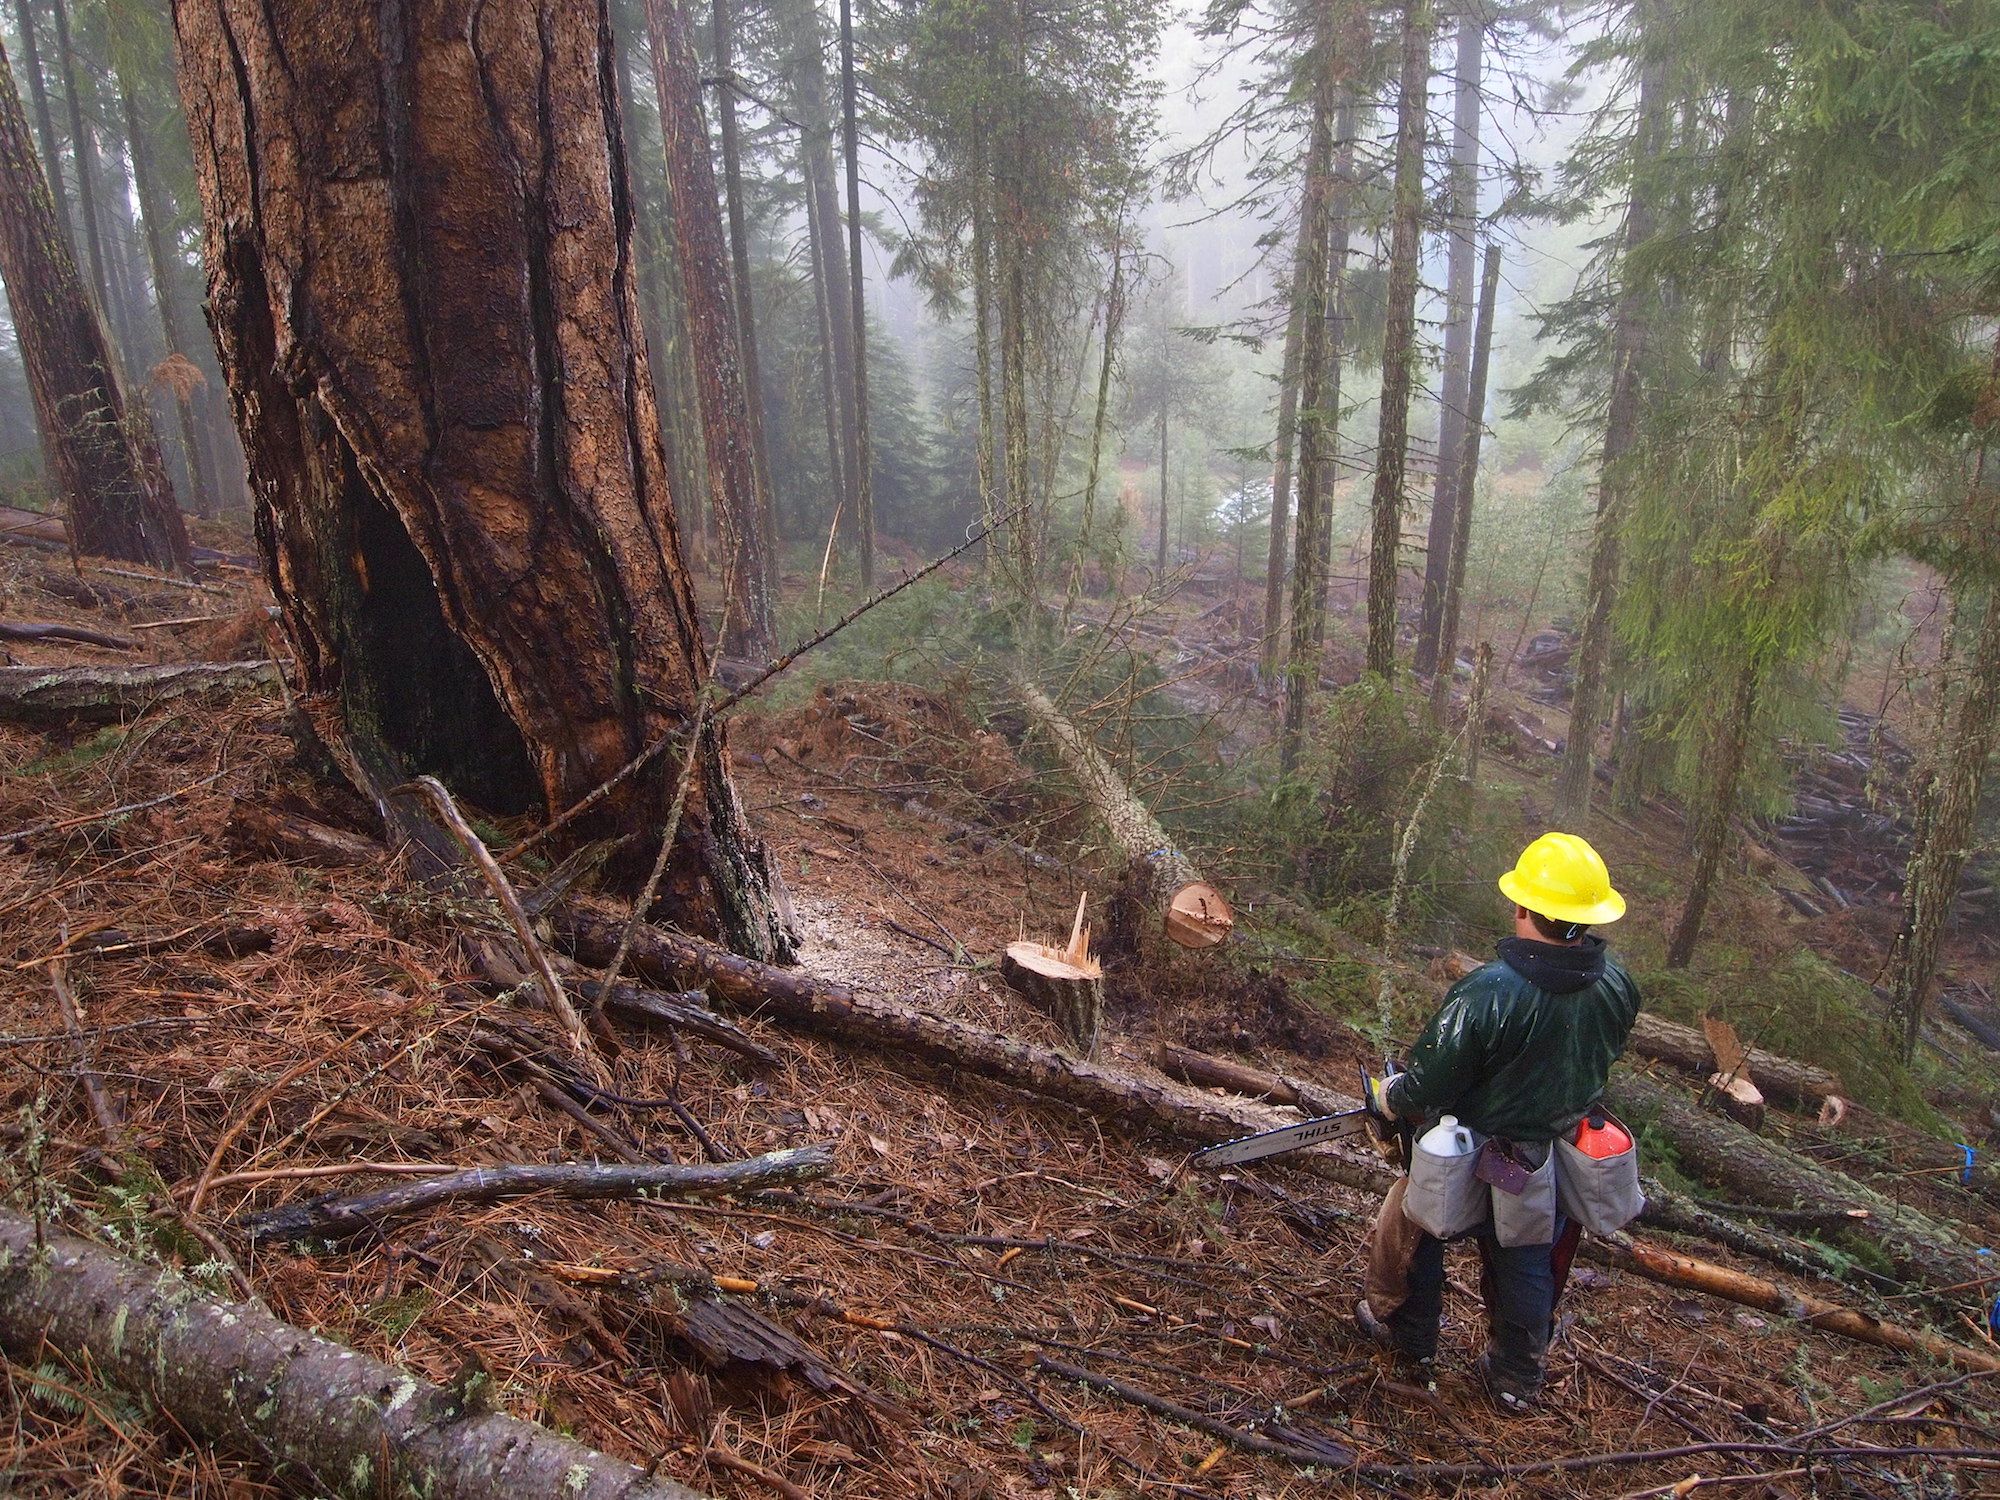 A worker cuts down a tree in a forest near Ashland, Oregon, as part of a larger wildfire prevention strategy.